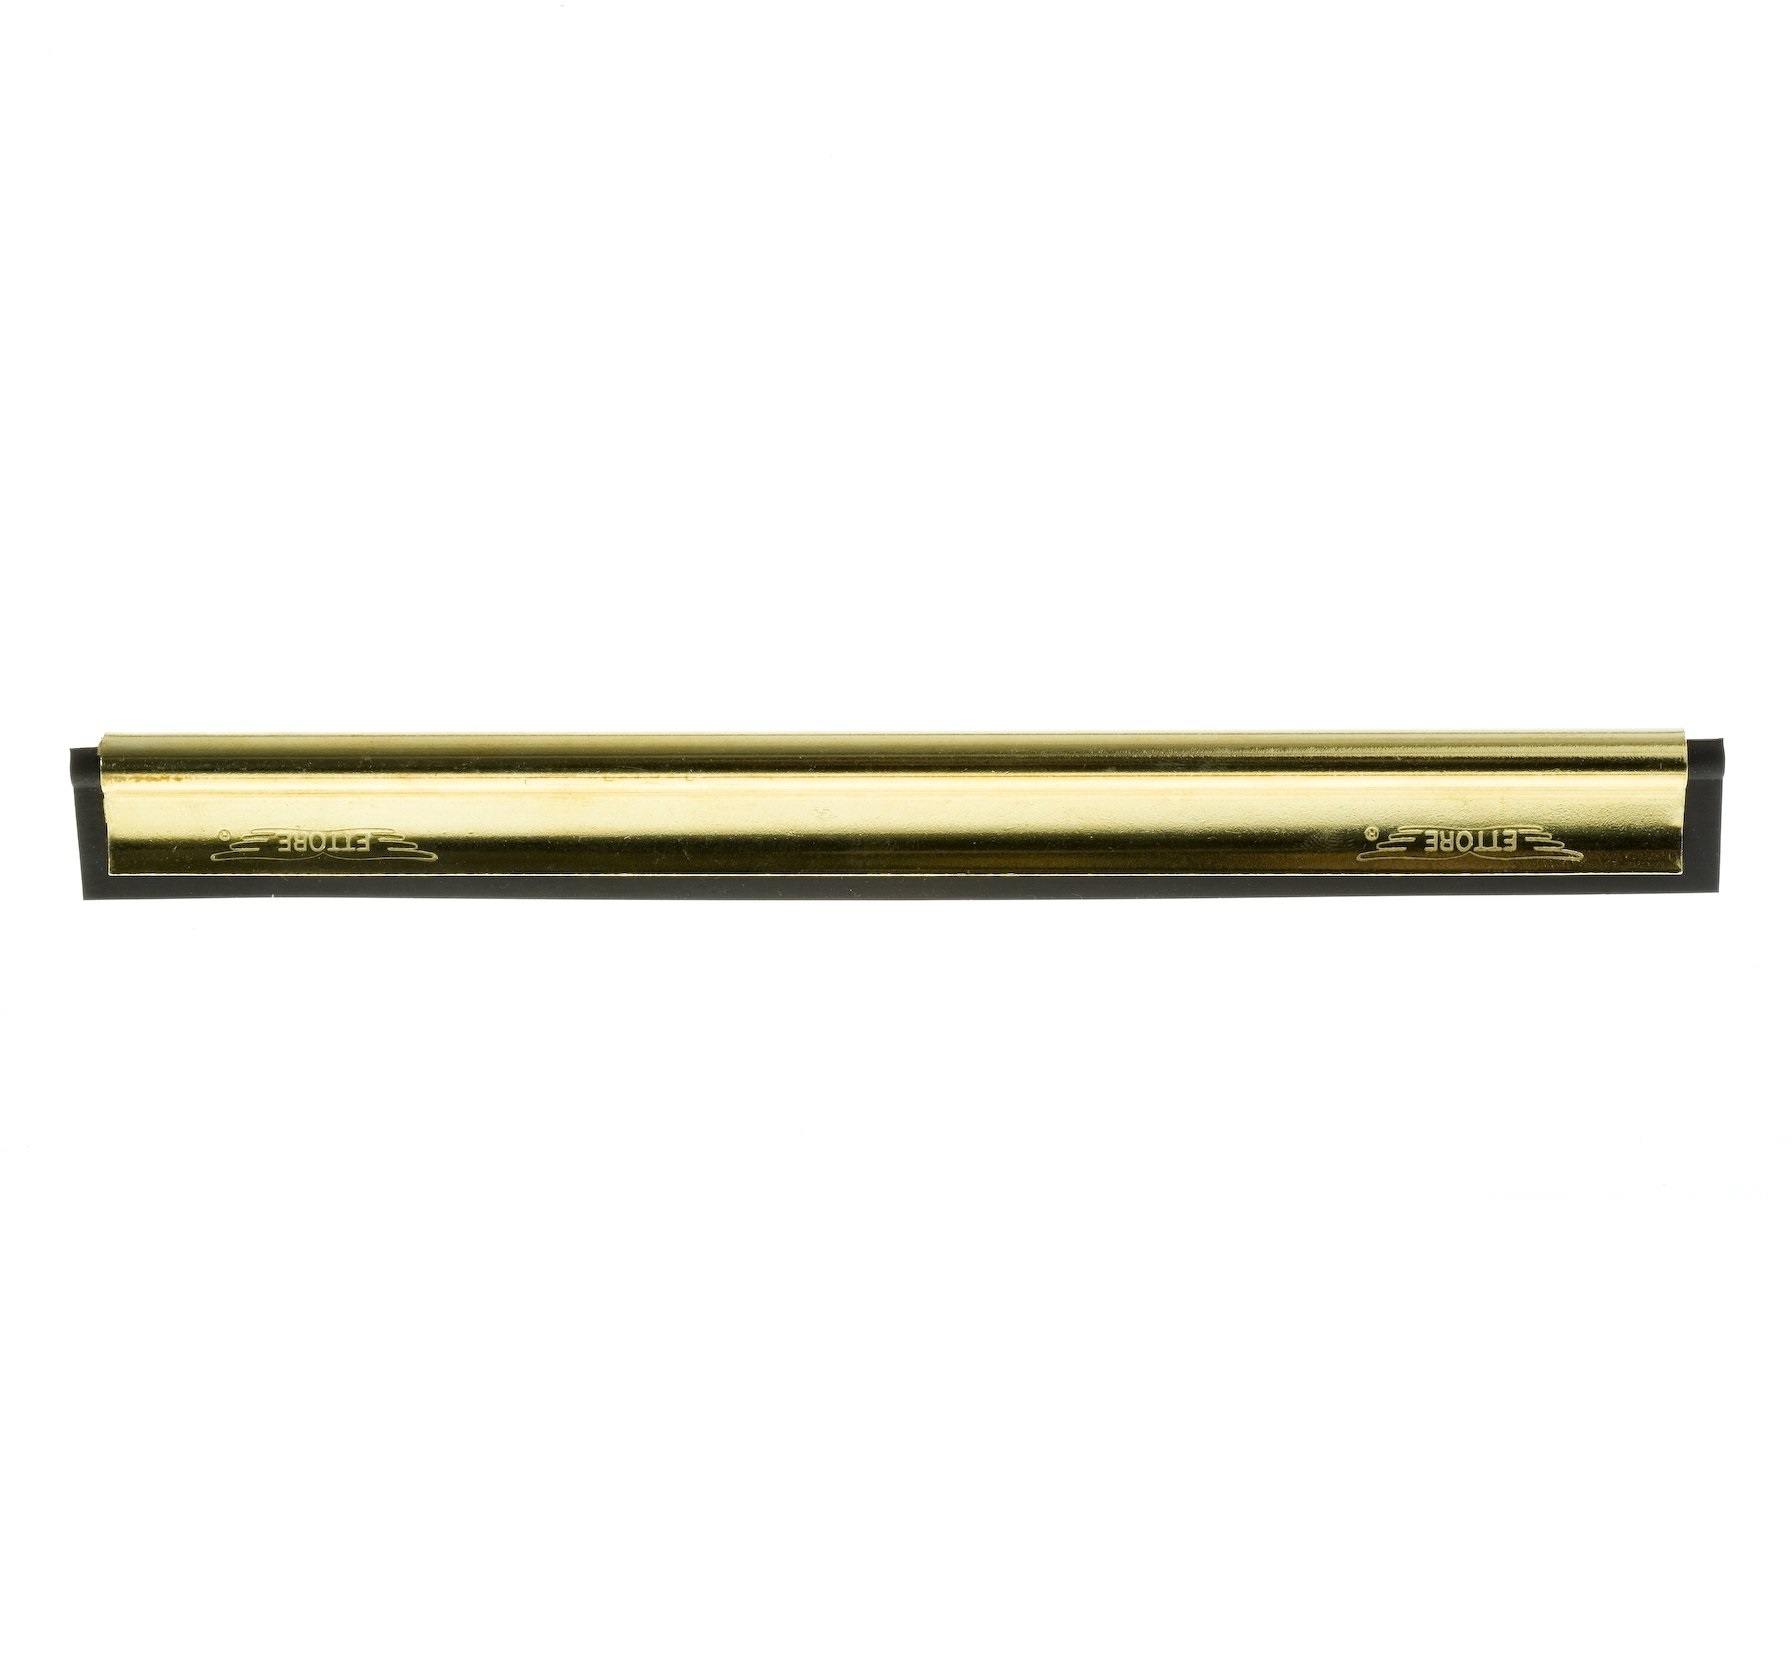 Ettore Master Brass Channel & Rubber 12-inch